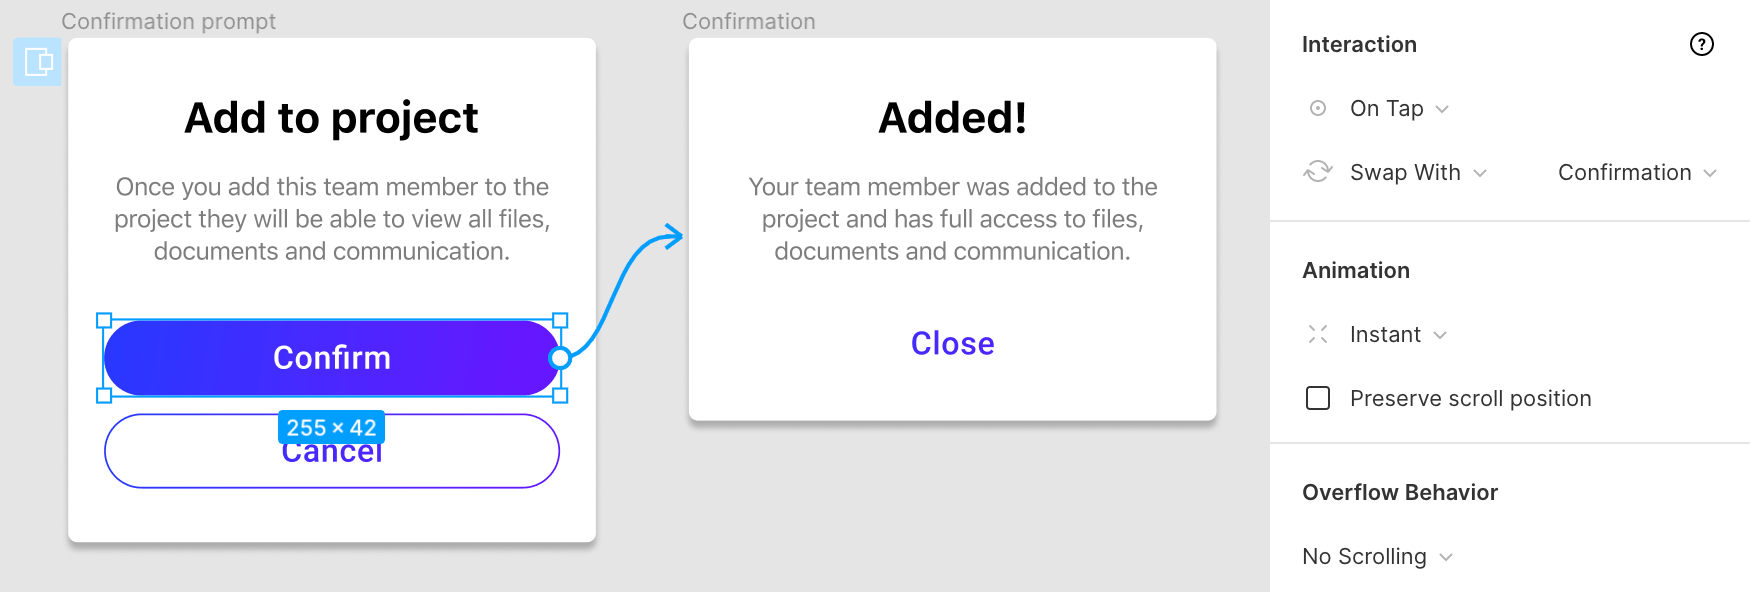 On tap animation for closing the modal